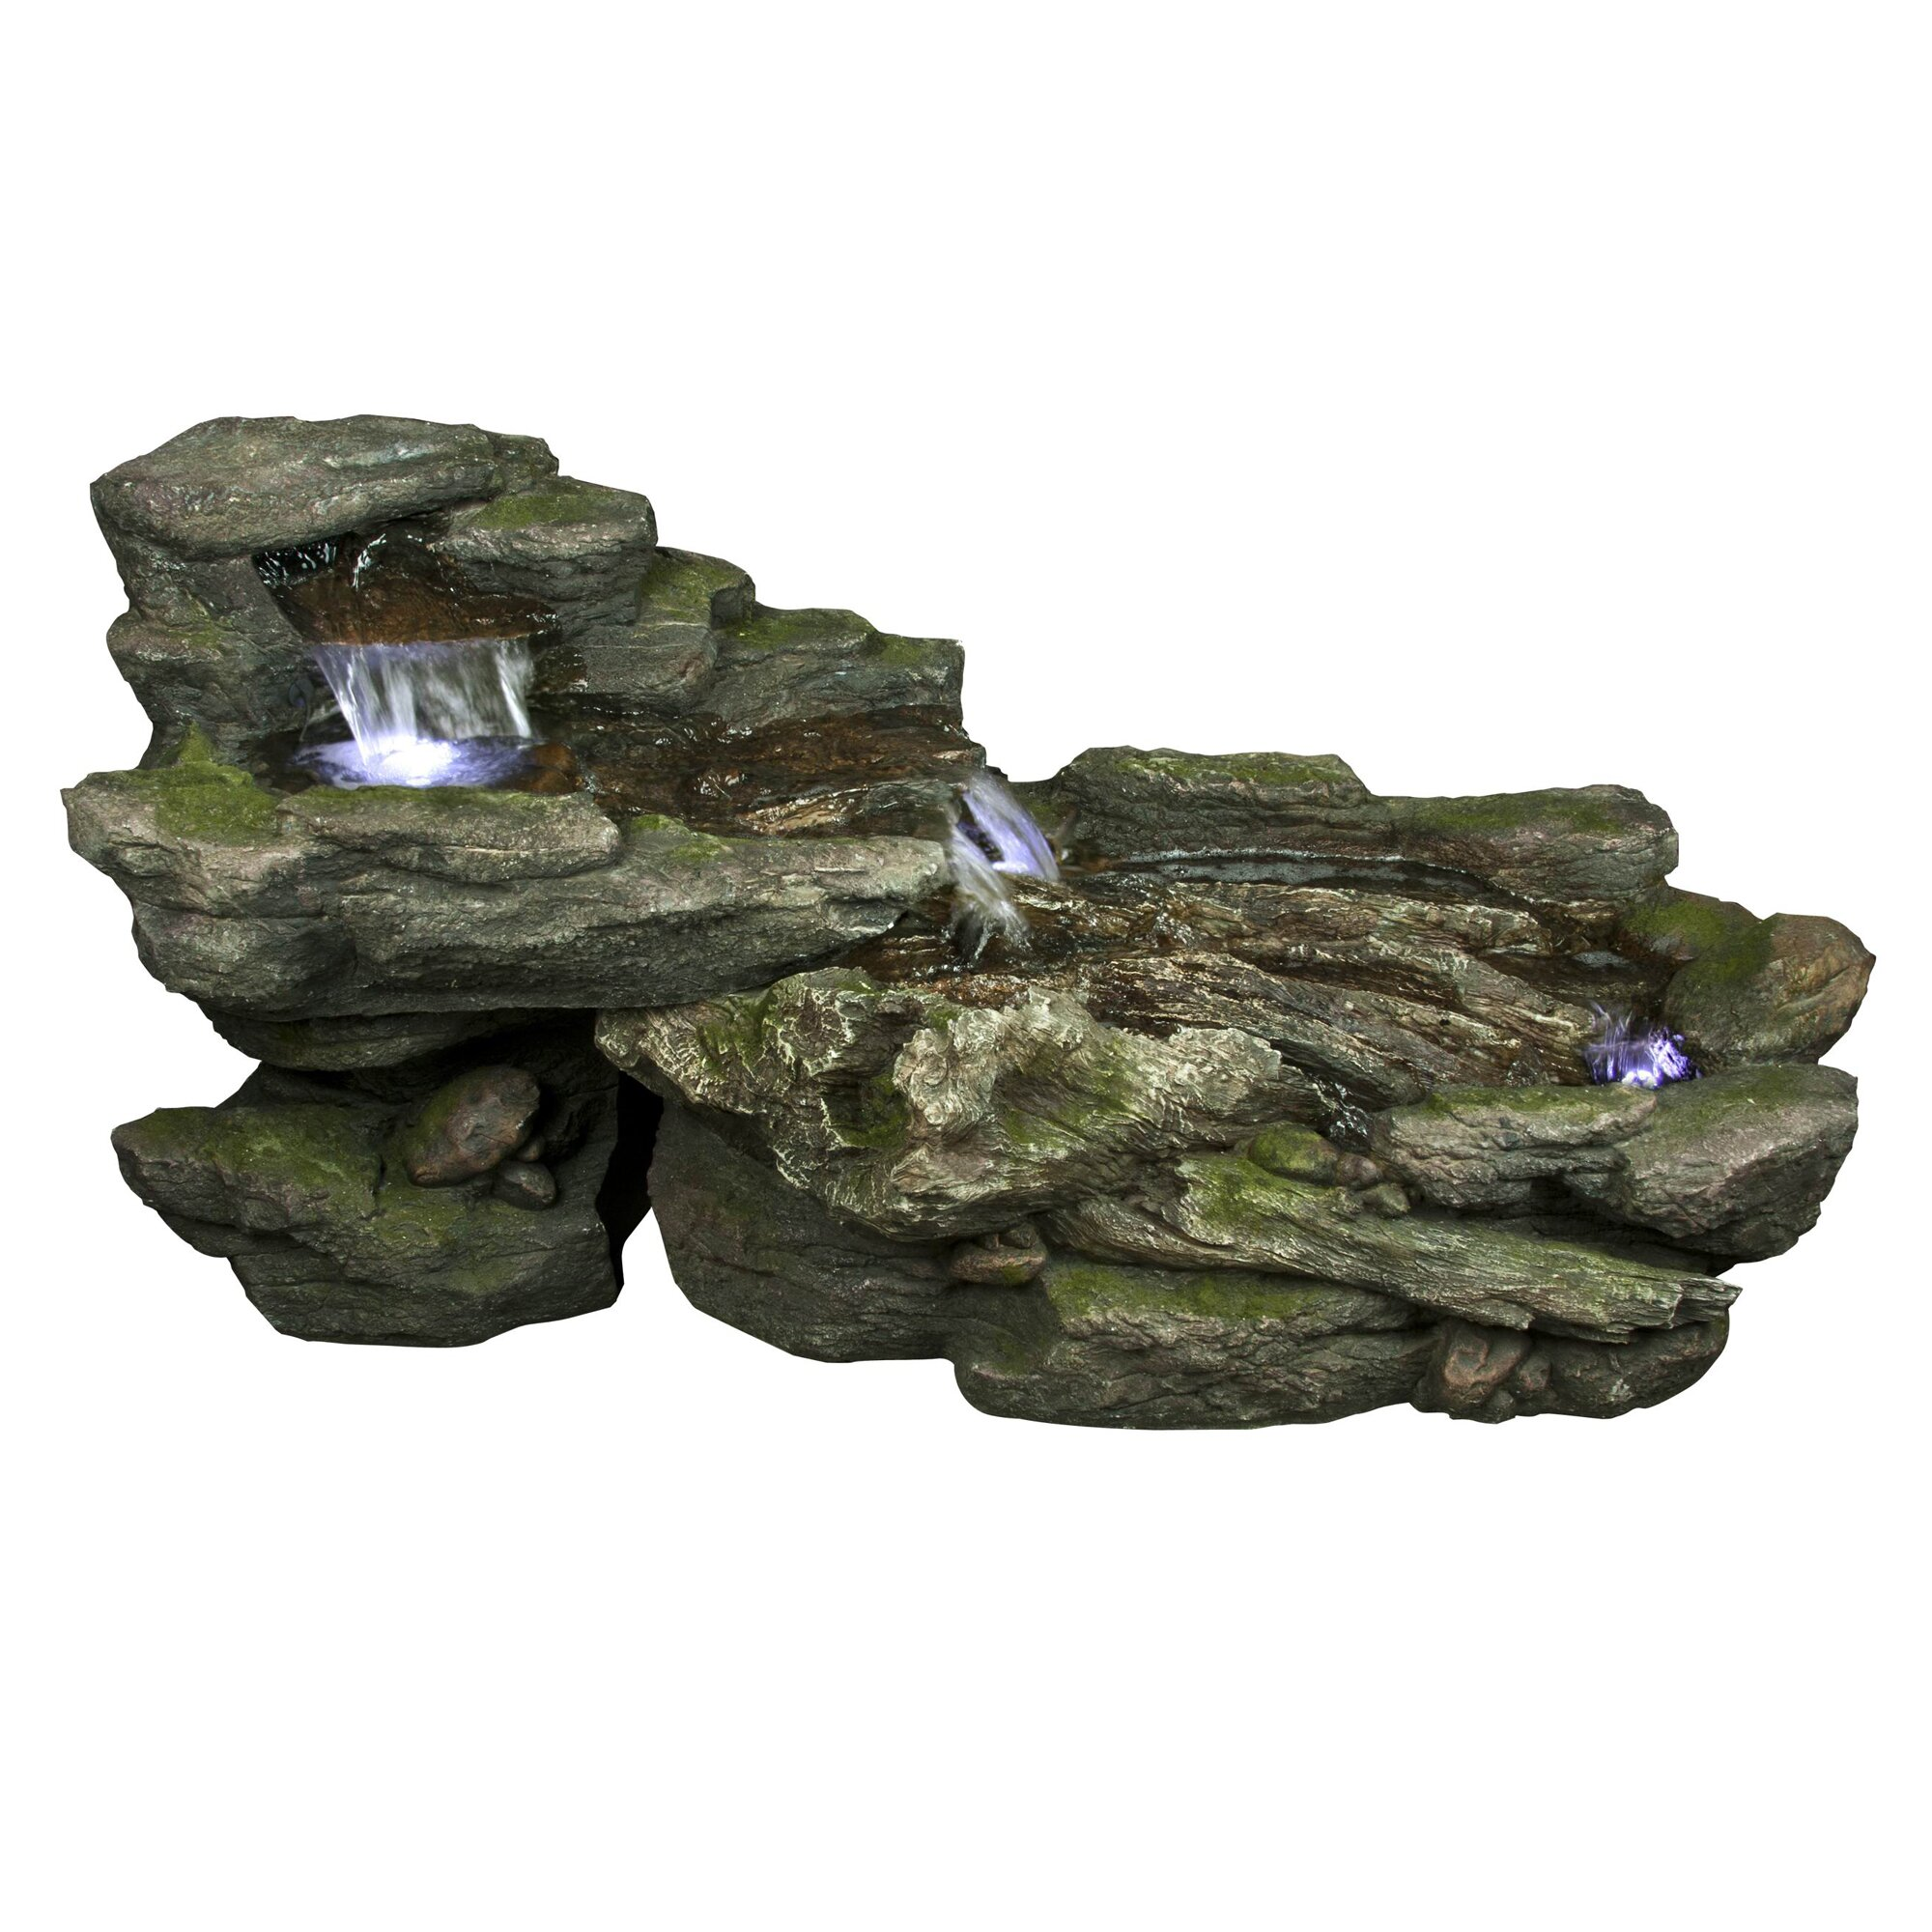 Home Decor Fountain: Yosemite Home Decor Cascading Fountain & Reviews